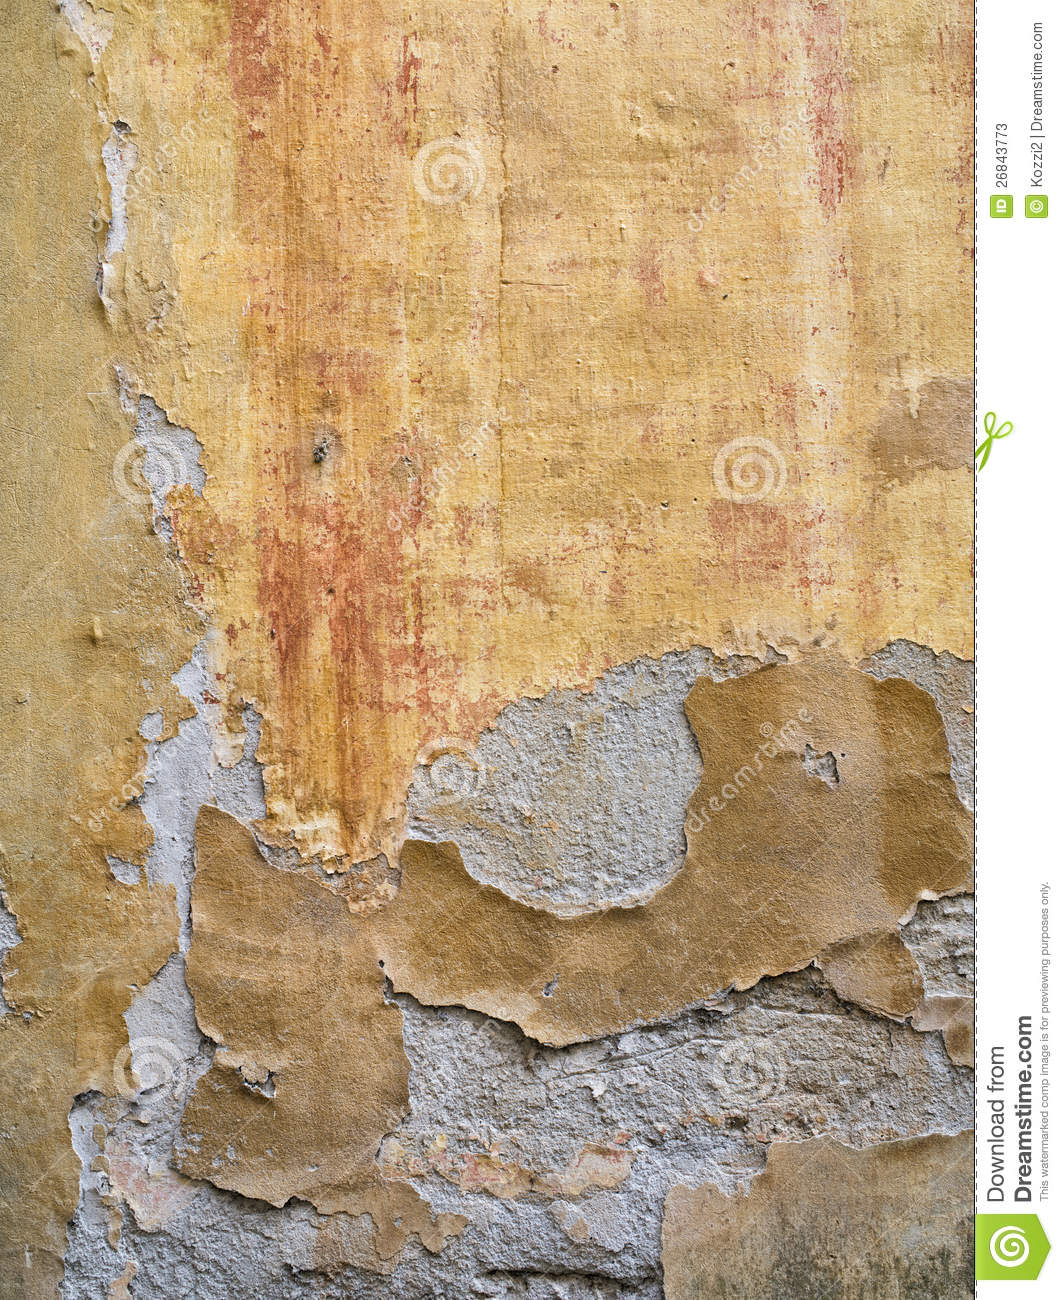 how to clean plaster walls after removing wallpaper